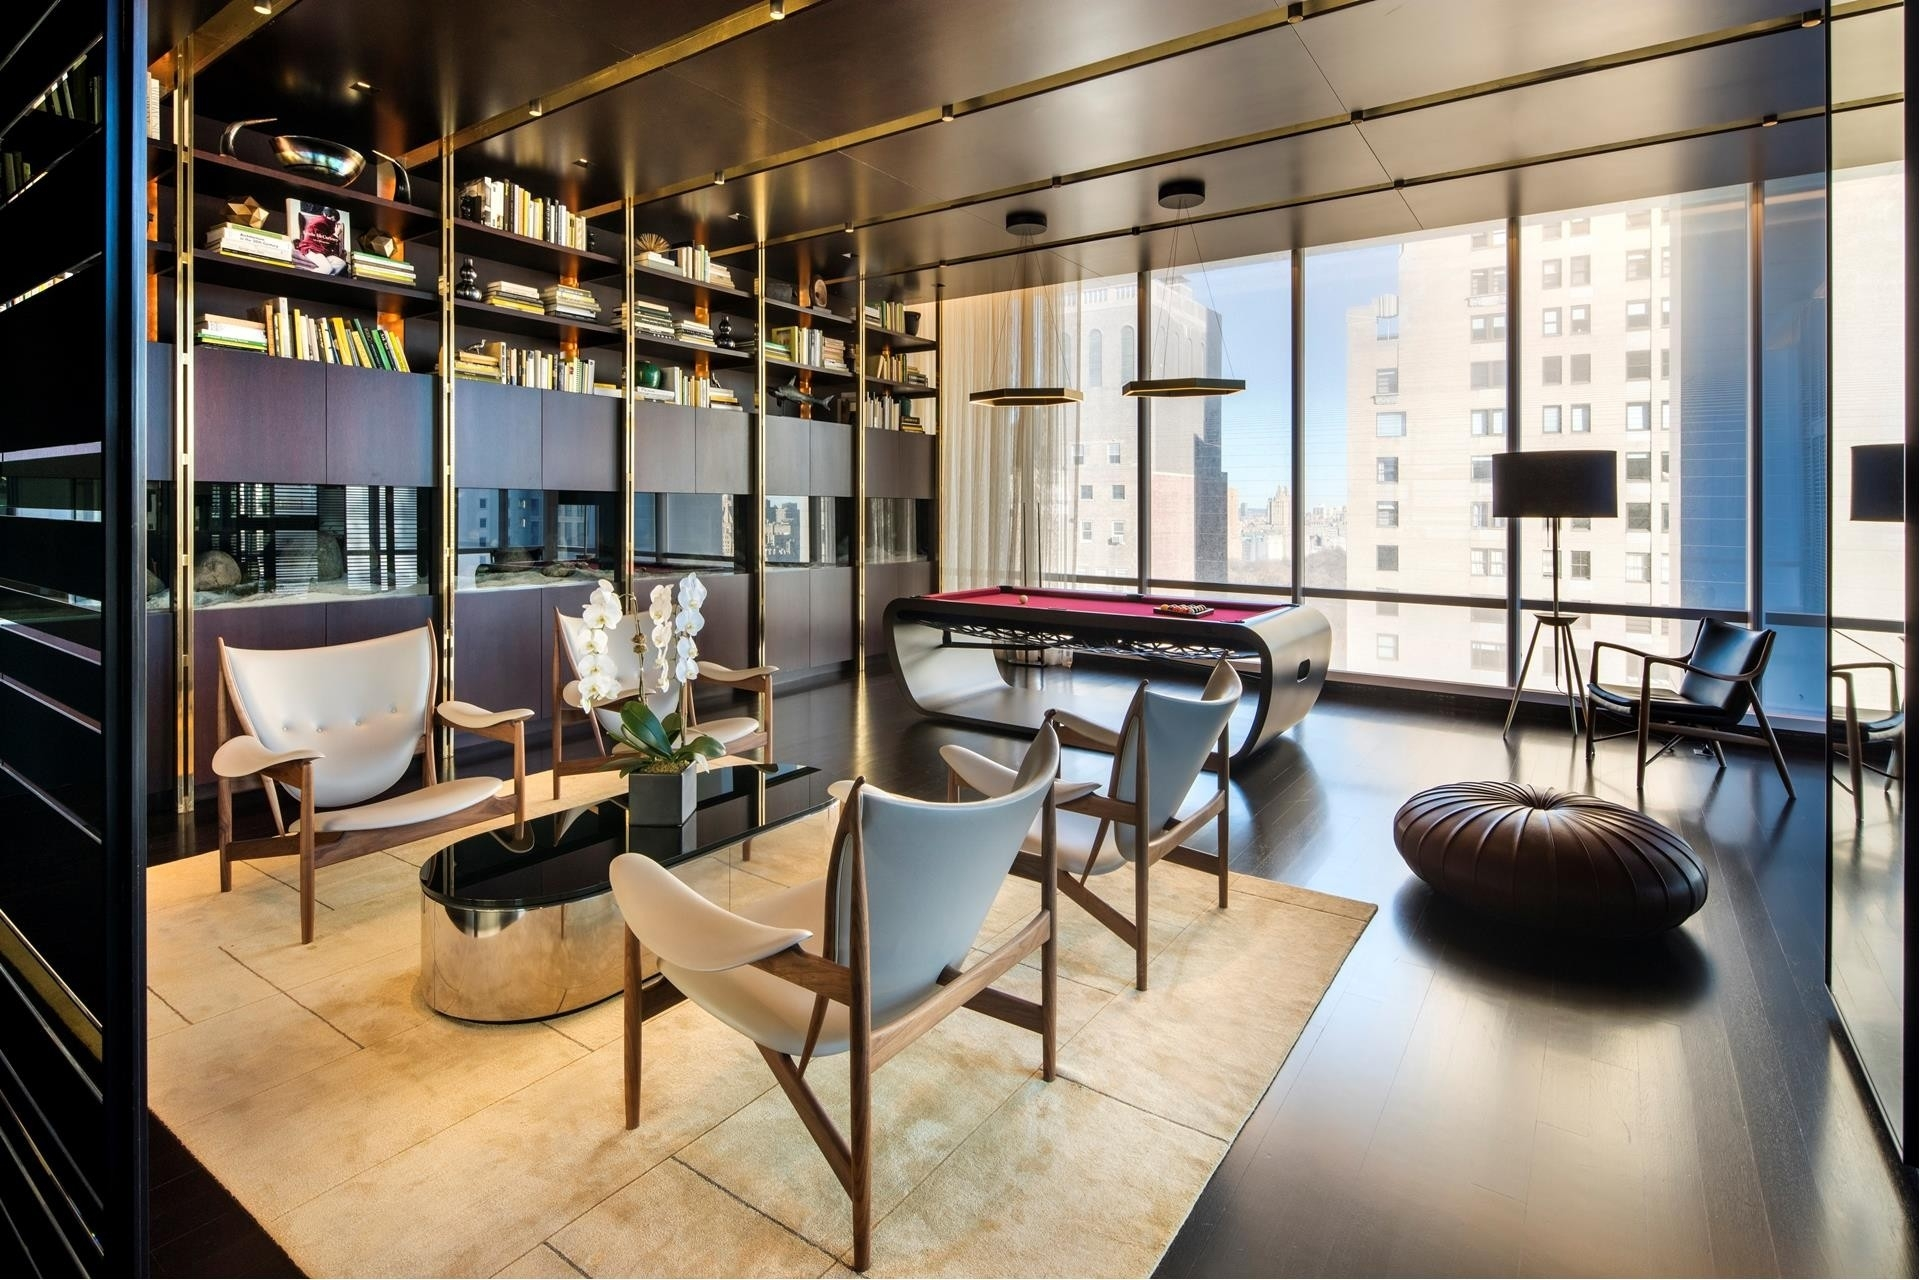 10. Condominiums for Sale at One57, 157 West 57th St, 41A Midtown West, New York, NY 10019